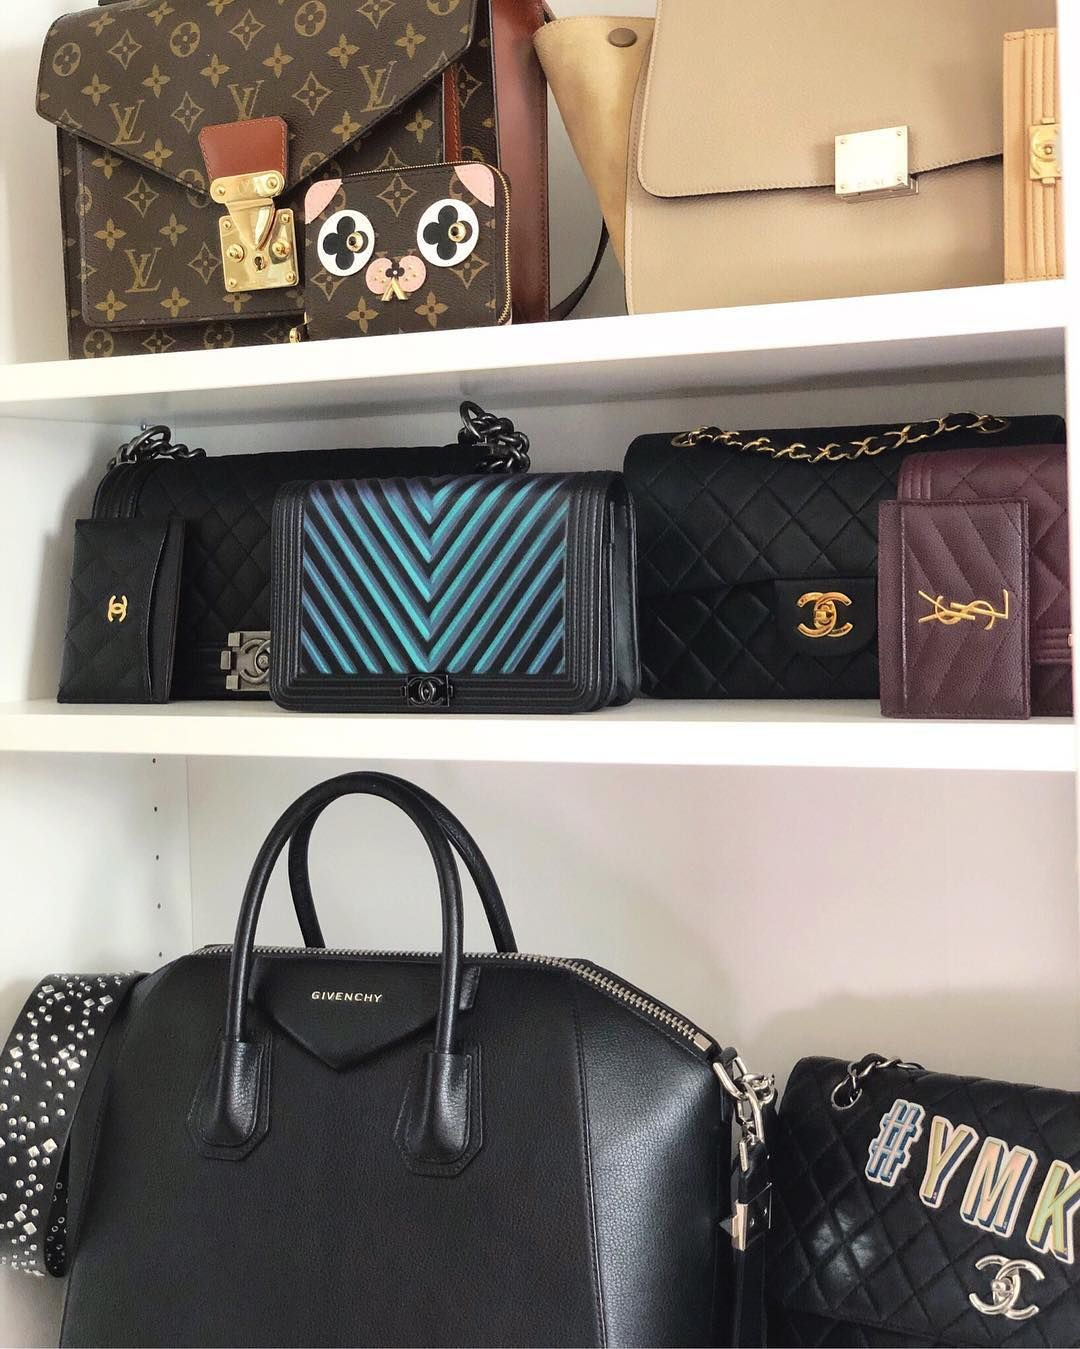 a03abfb71692 Some of my designer handbag collection: vintage Louis Vuitton monogram  Monceau, Celine Trapeze Dune, Chanel chevron iridescent WOC, Givenchy  Antigona, ...